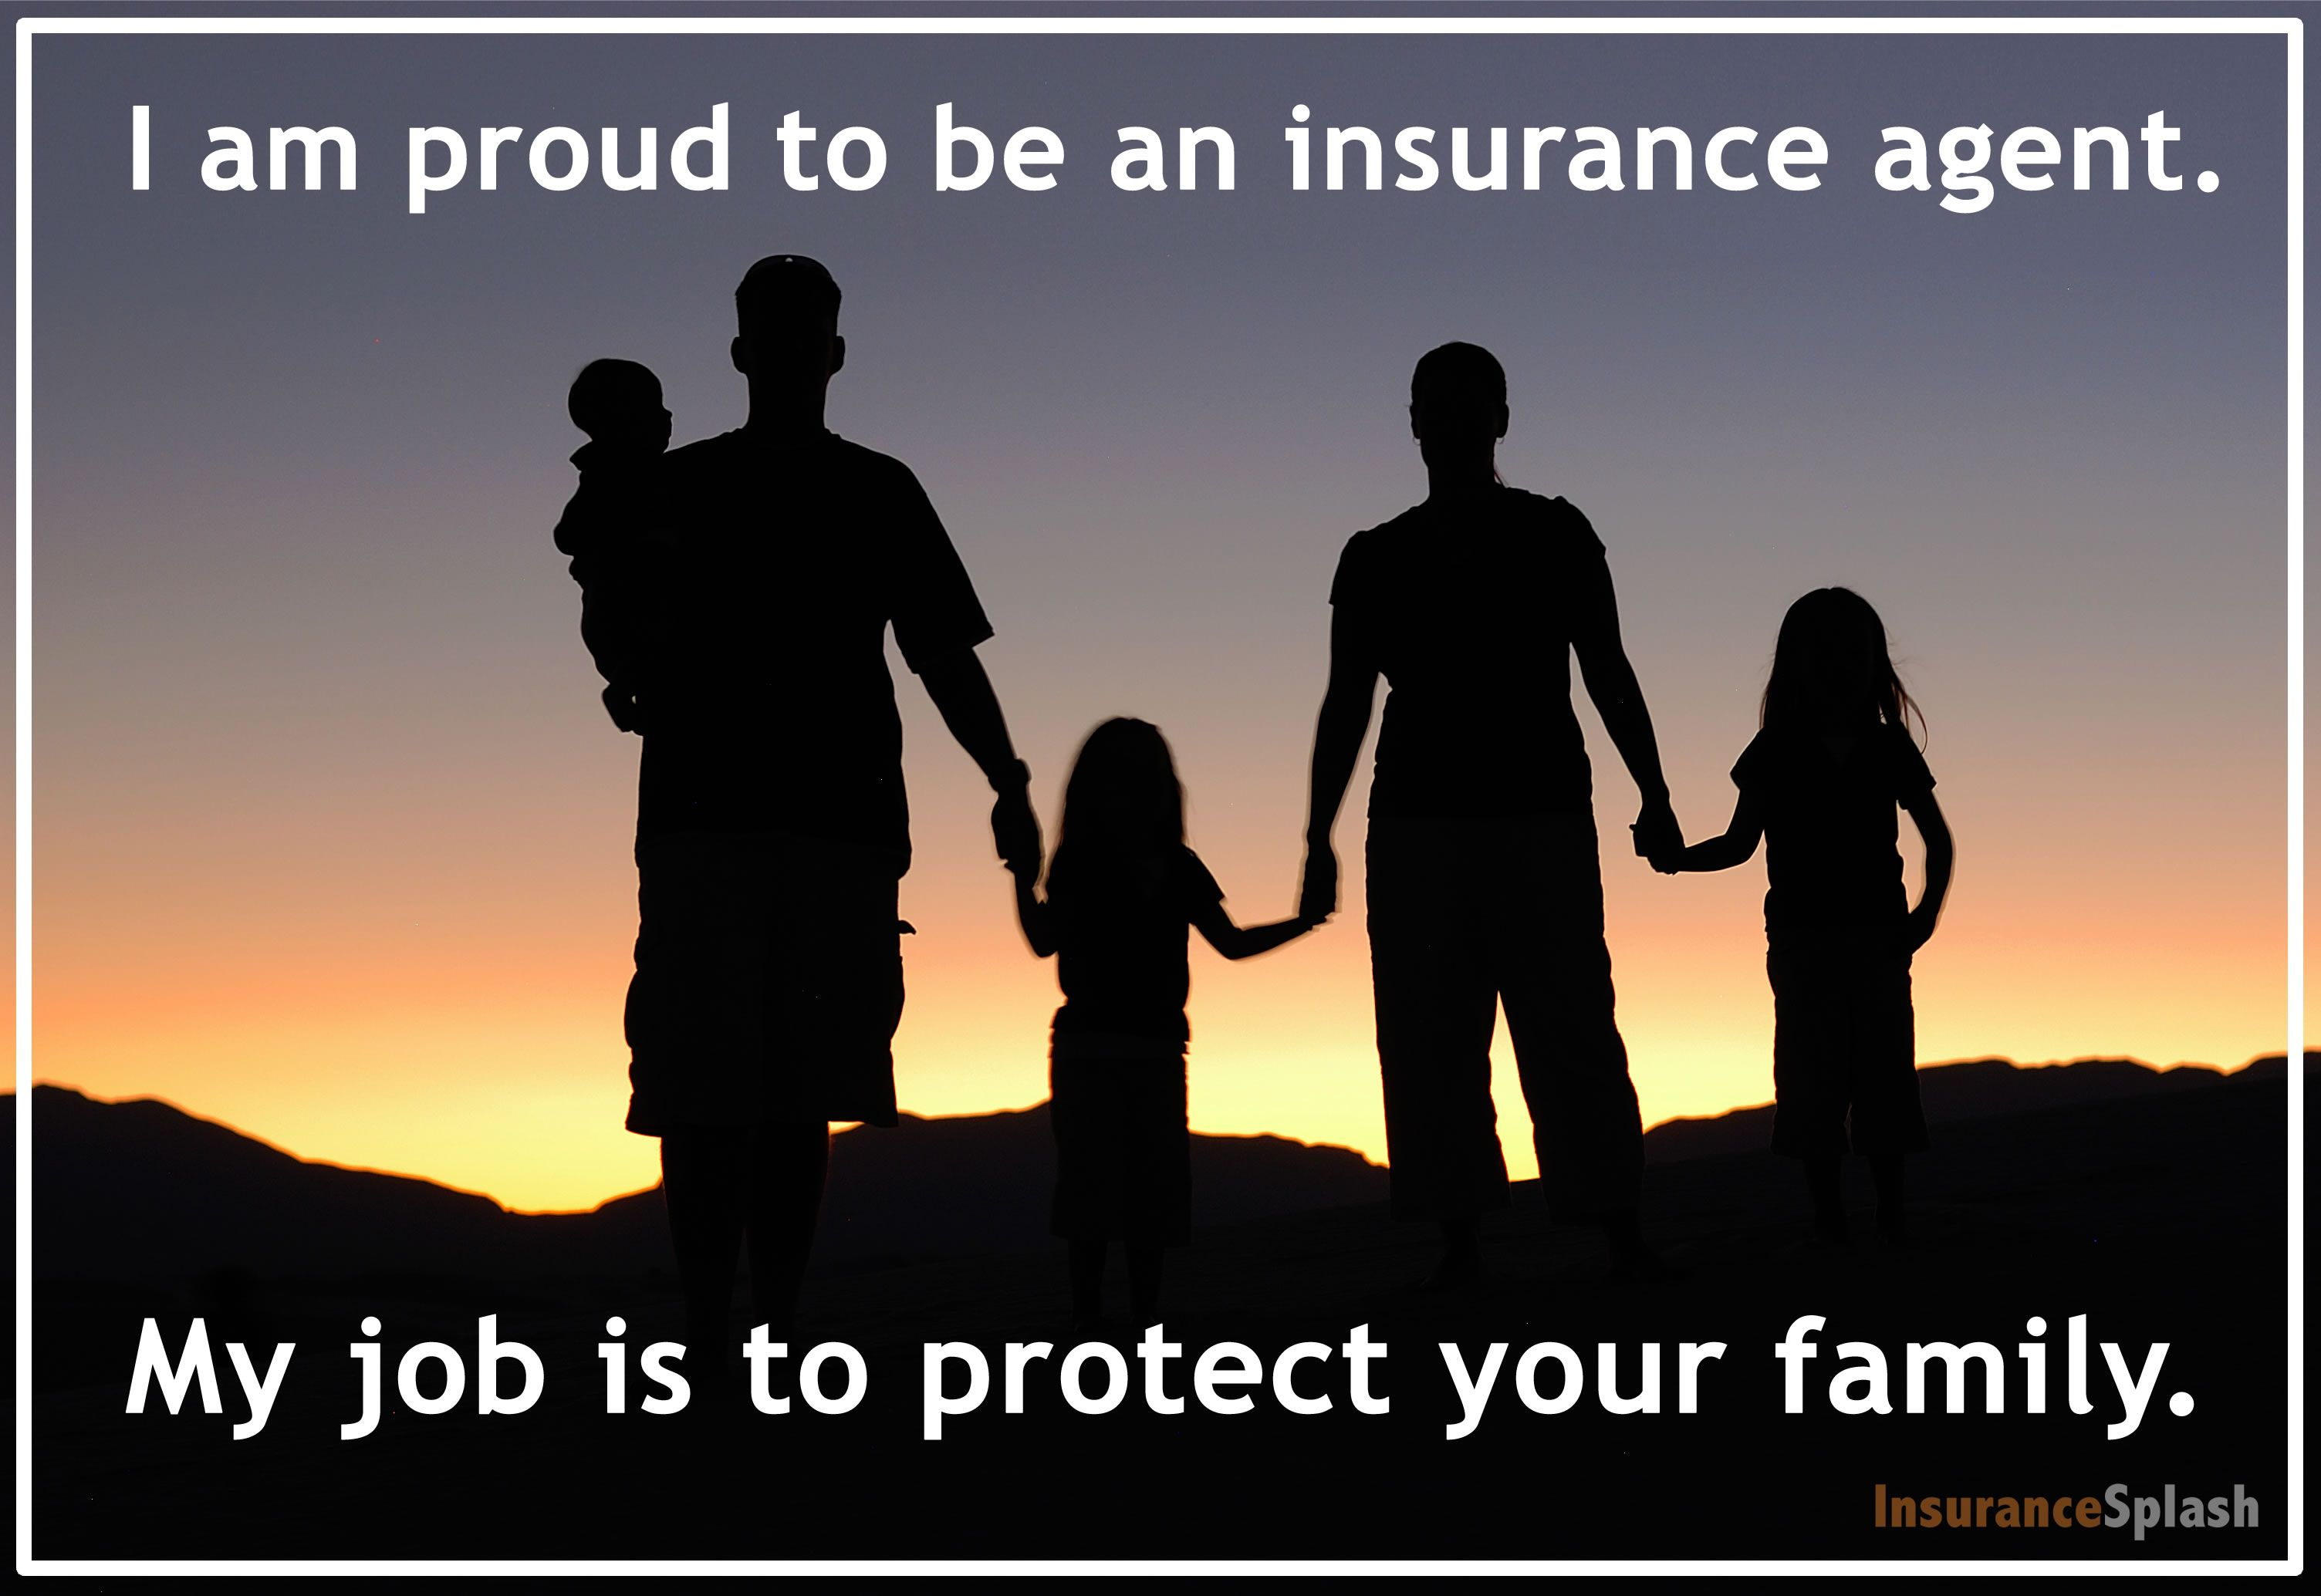 An Insurance Agent S Job Is To Protect Your Family That S